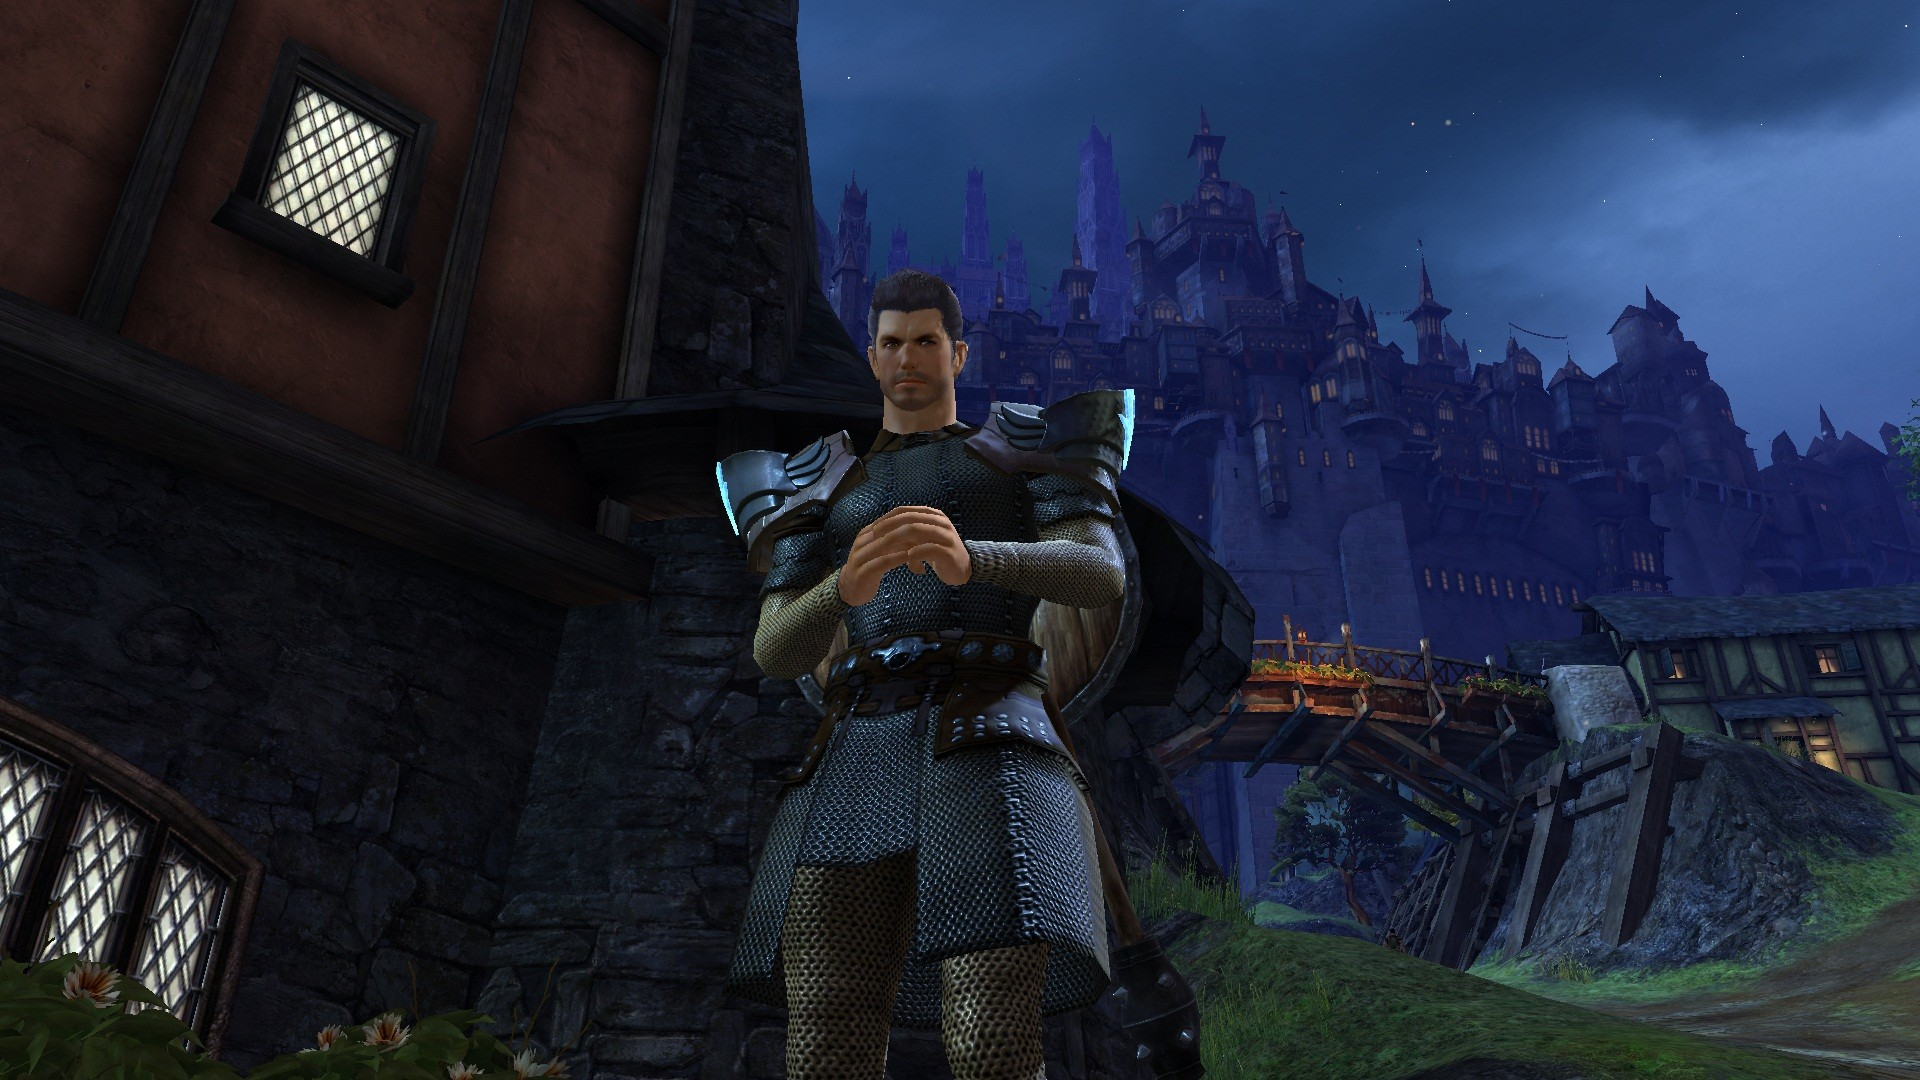 Guild Wars 2 - Tried to make a good looking, bad ass looking, non metro human. Success?